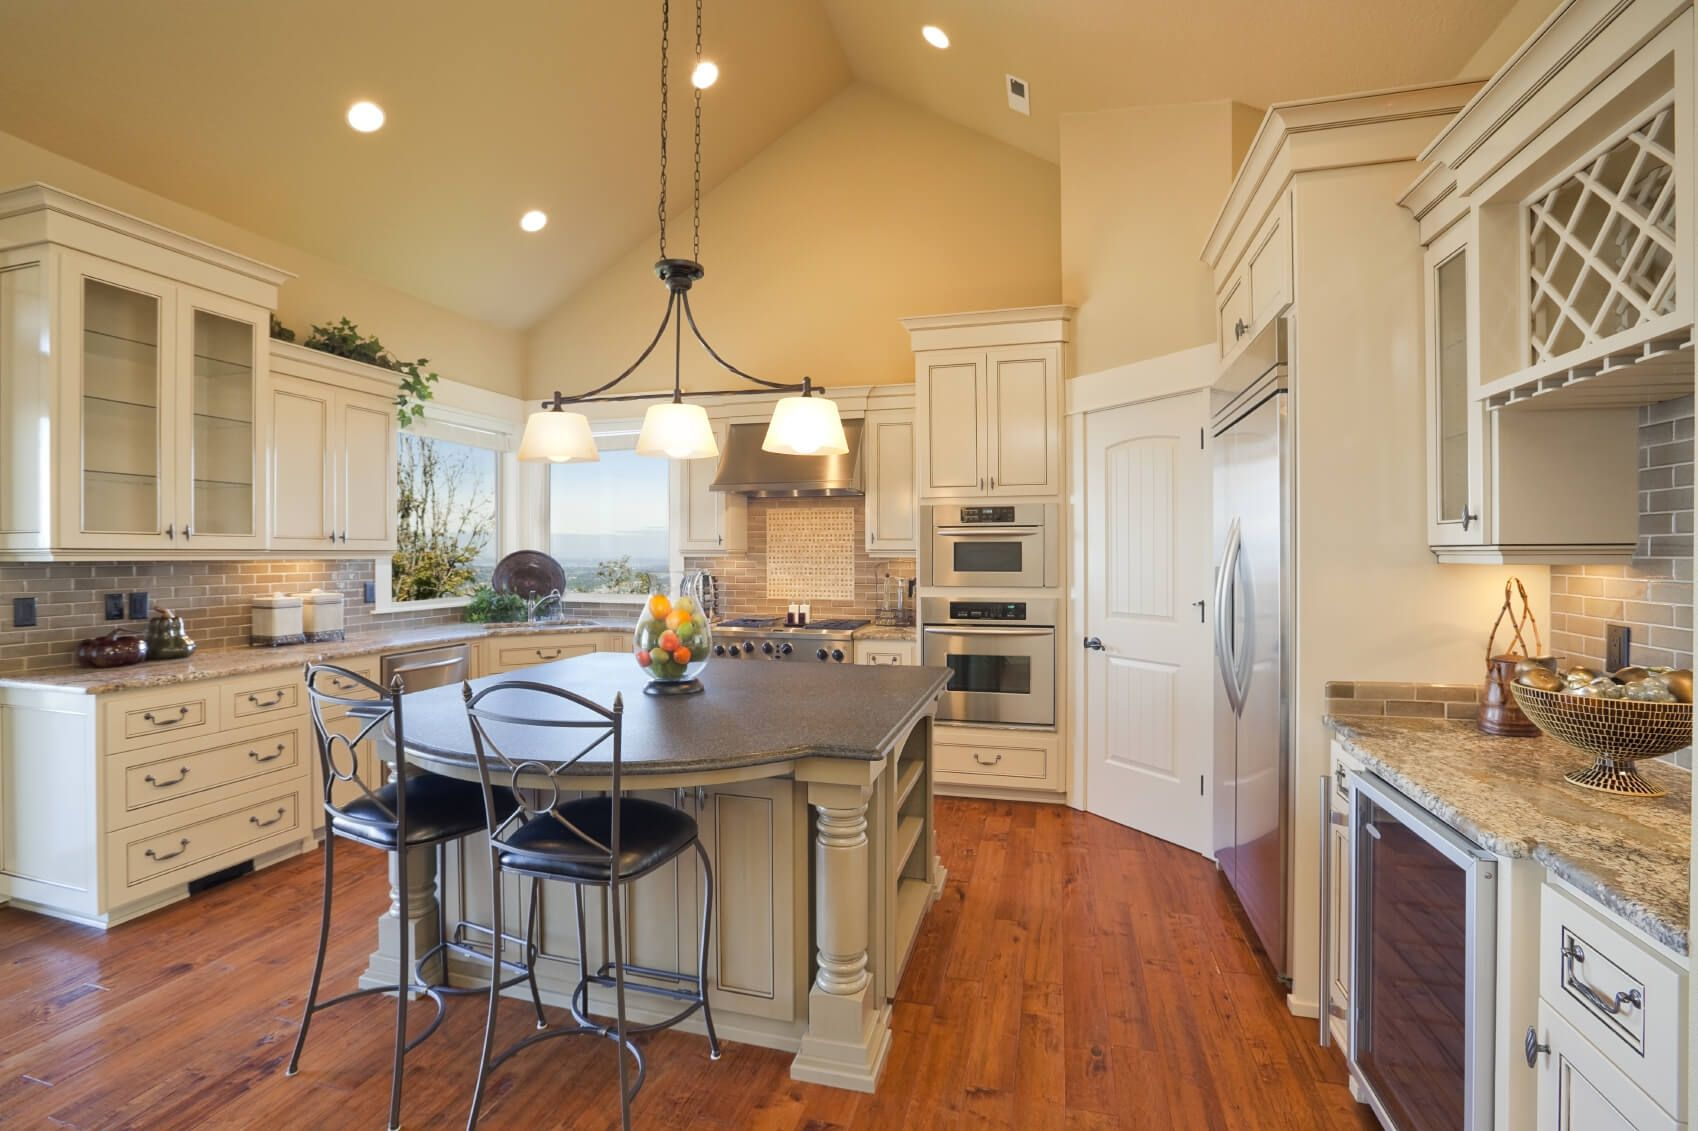 lighting ideas for vaulted ceilings. Cute Vaulted Ceiling Living Room Ideas Pinterest Discover And Save Creative Kitchen Lighting For Ceilings A